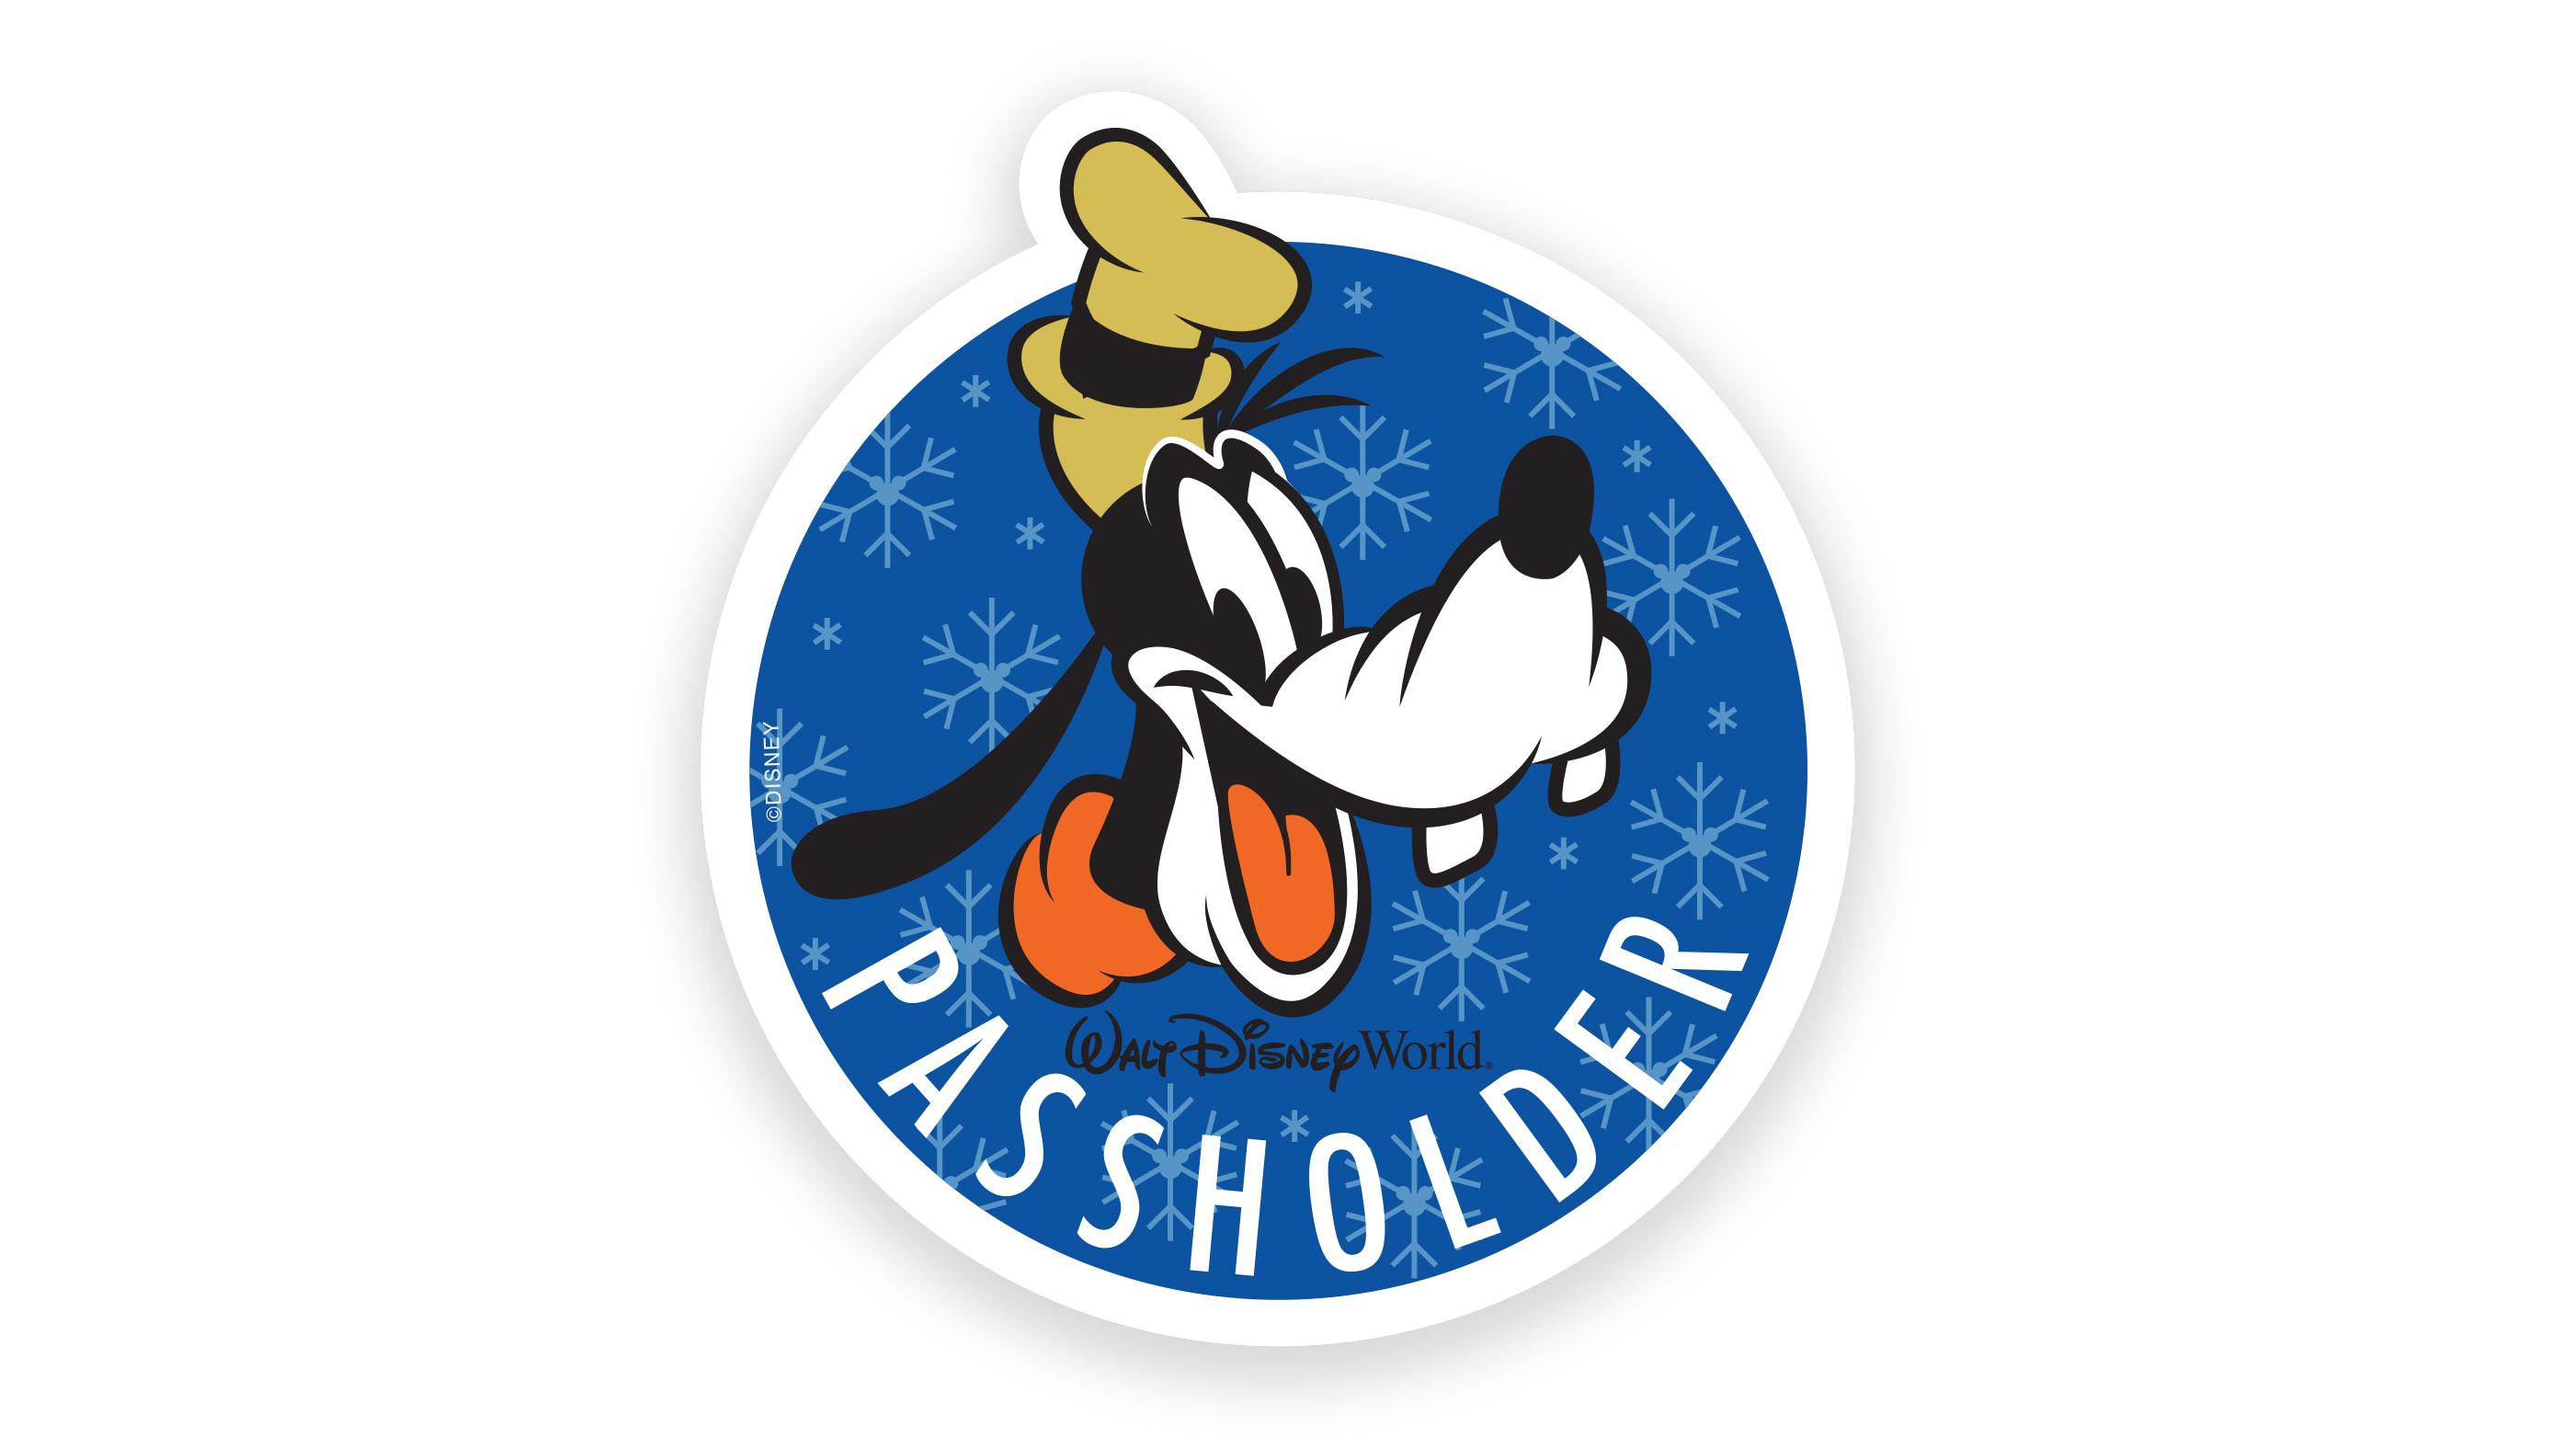 Passholder Magnet for the 2018 Epcot International Festival of the Holidays